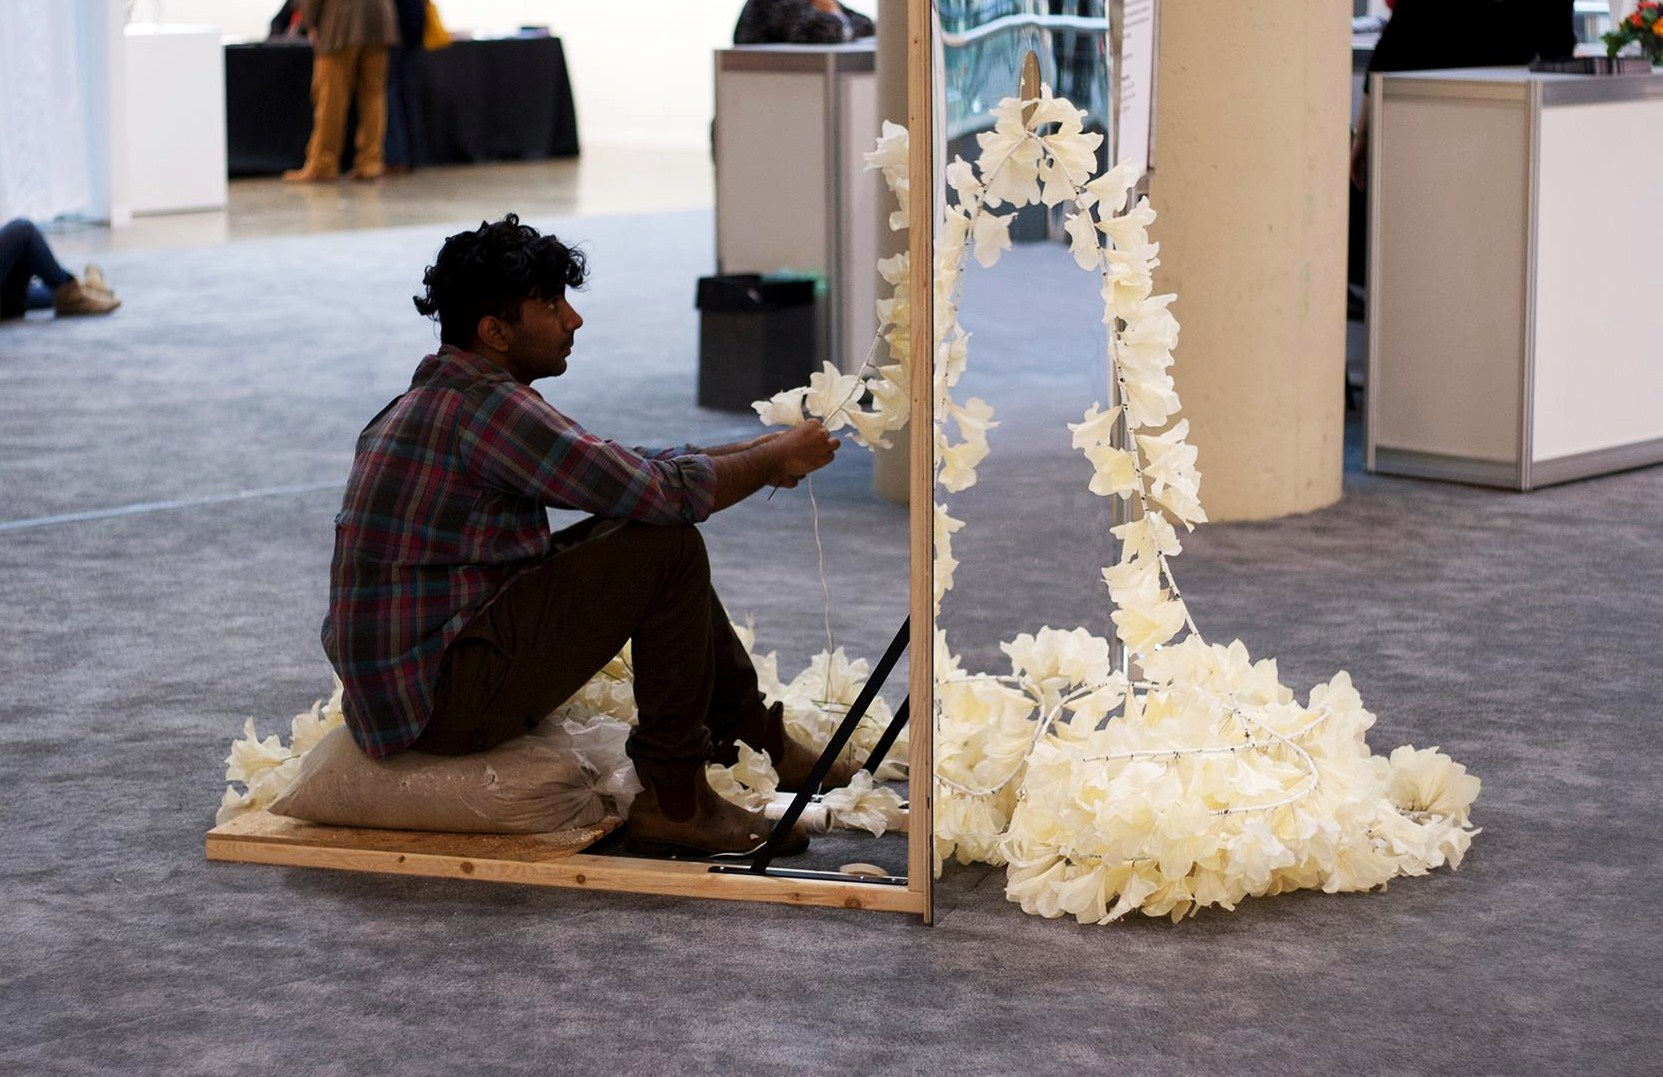 oshua Vettivelu preparing his sculpture Glory Hole for the 2012 iteration of the Art Toronto art fair. Photo: Elise Victoria Louise Winsor. Courtesy the artist.